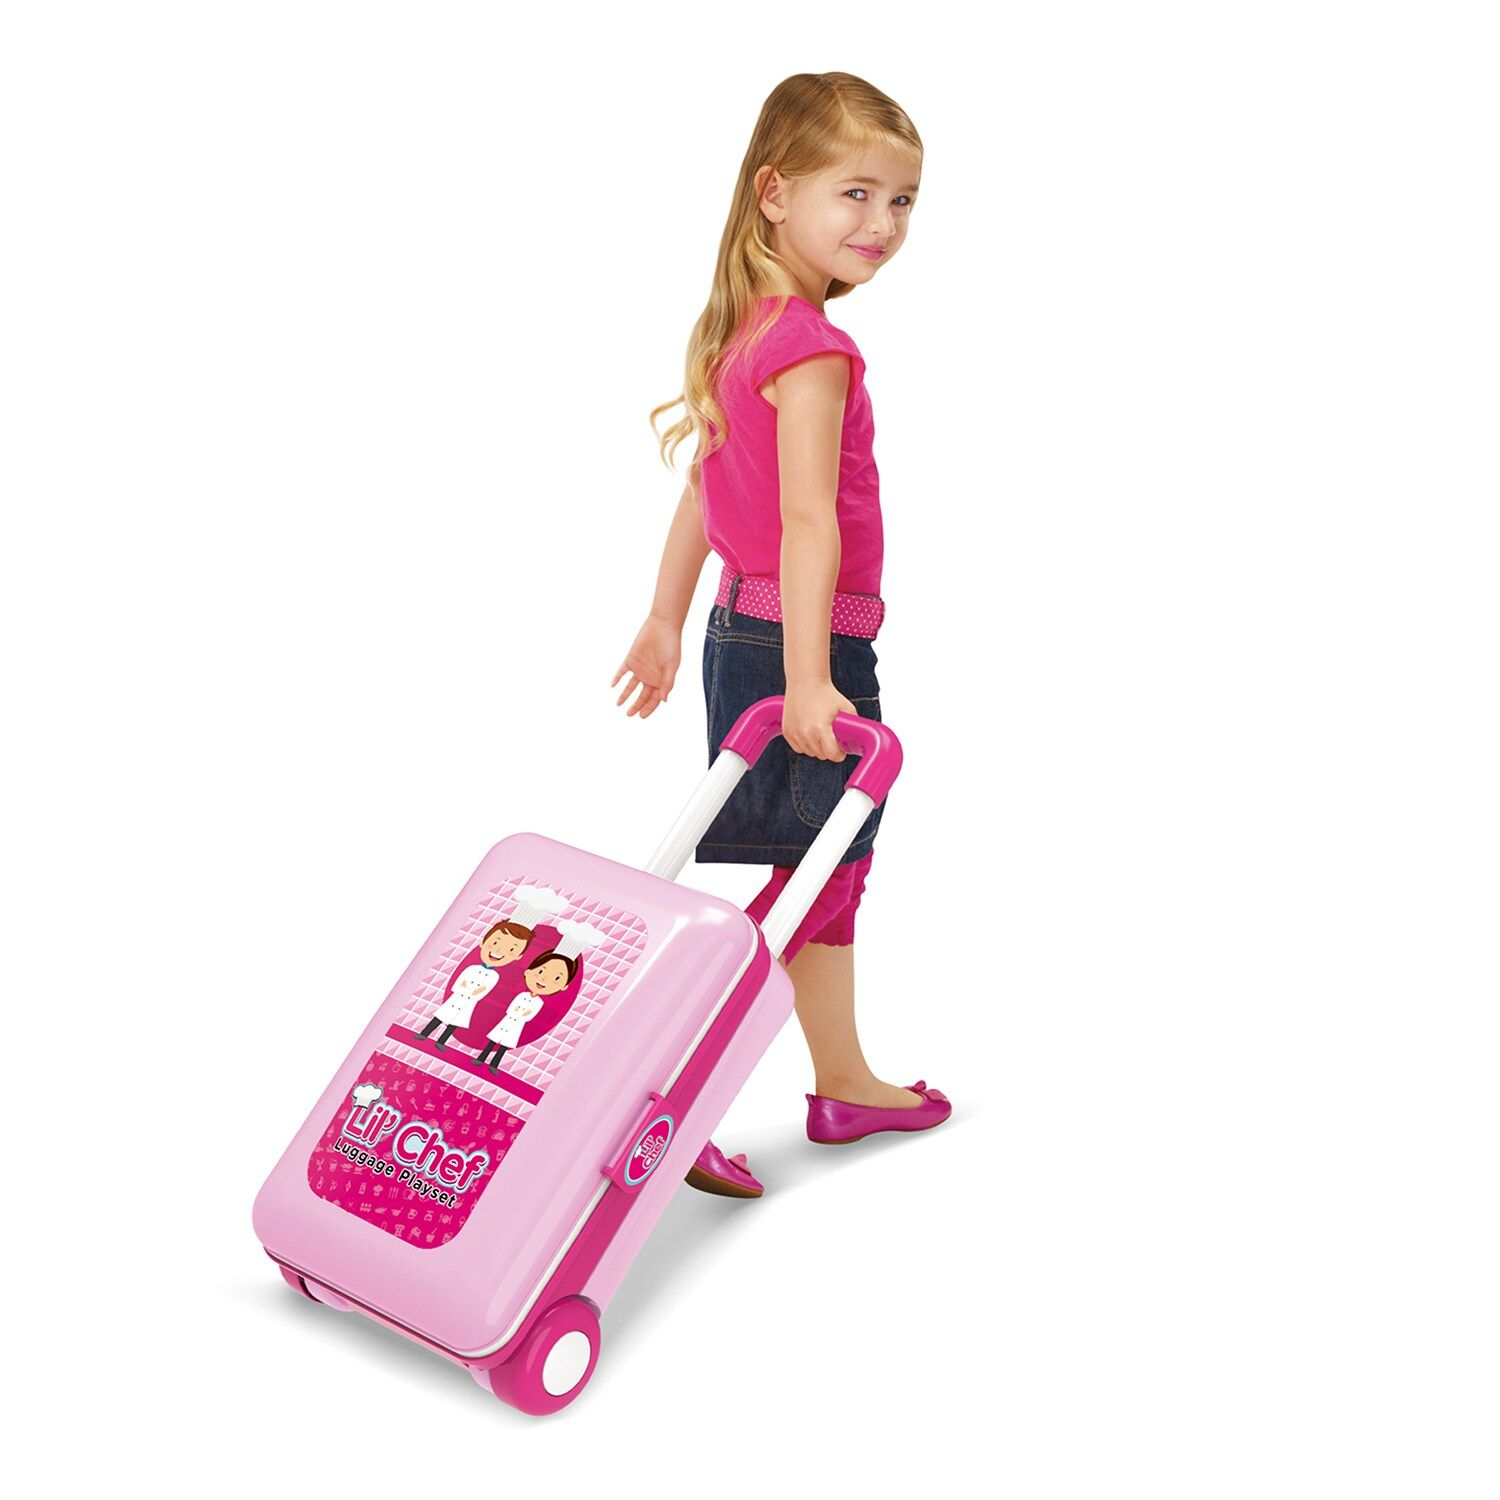 World Tech Toys Lil' Chef Pink 37 Piece Luggage Playset #techtoys